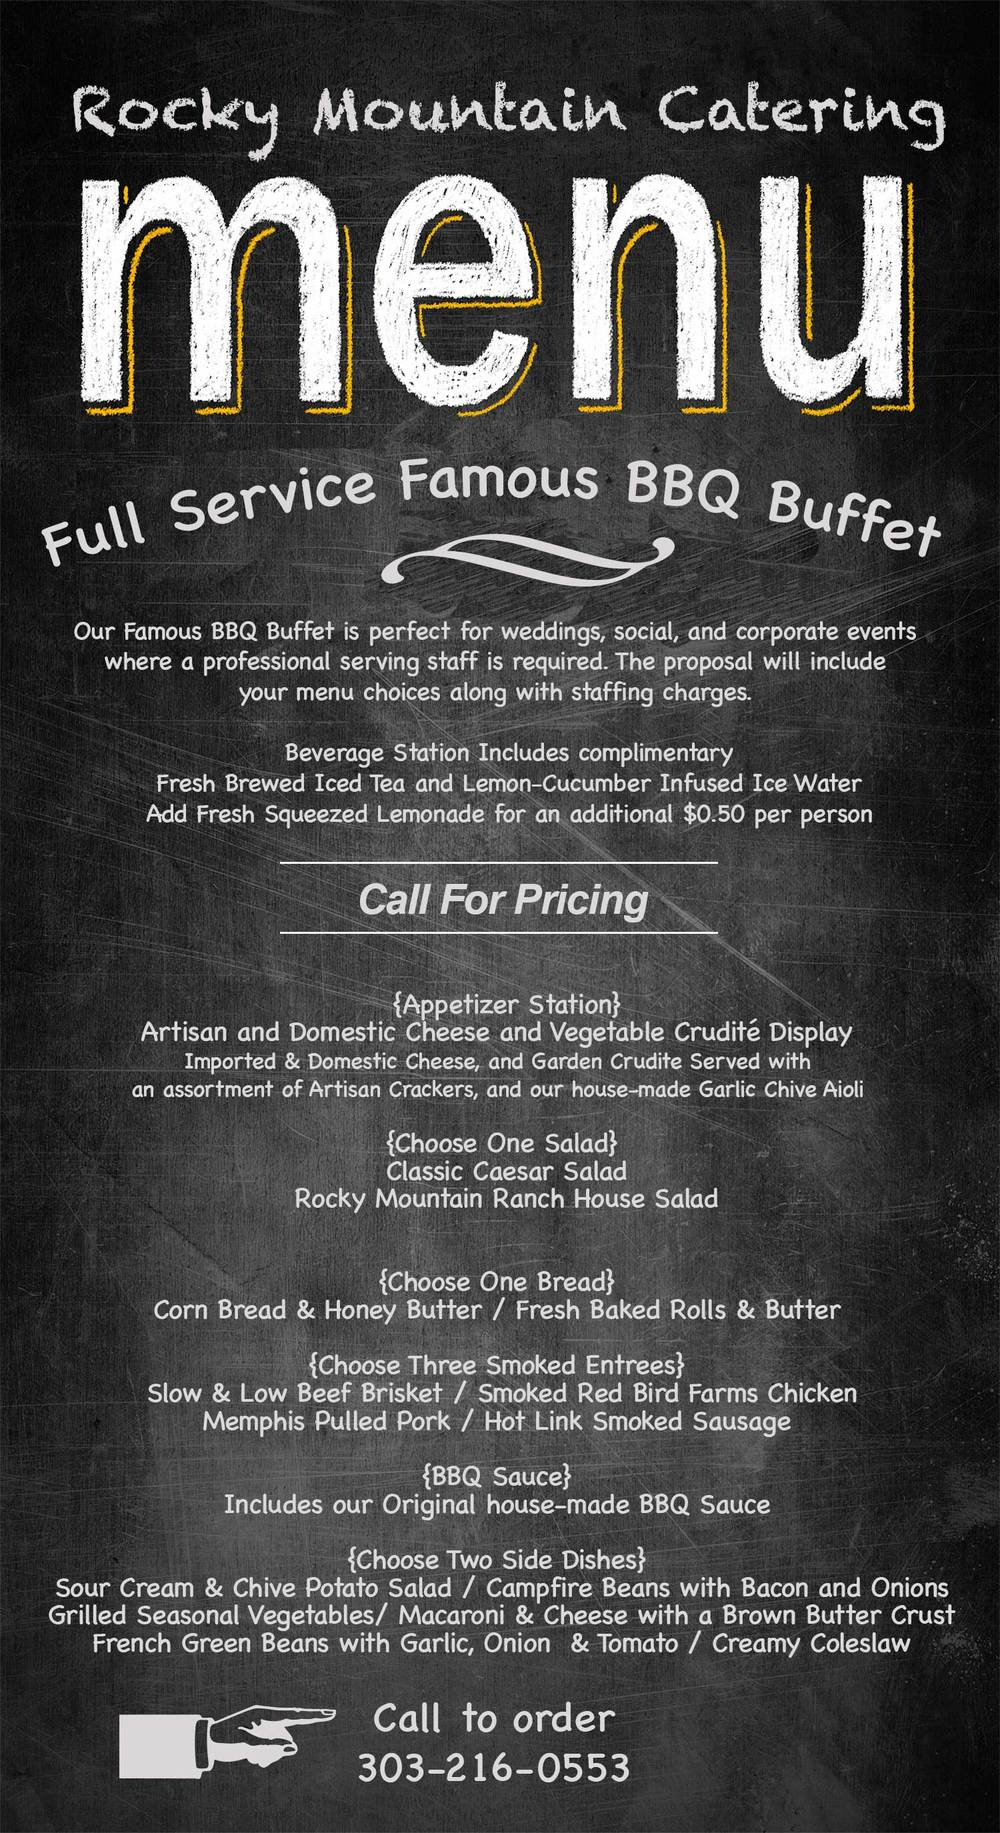 Full Service Famous BBQ Buffet